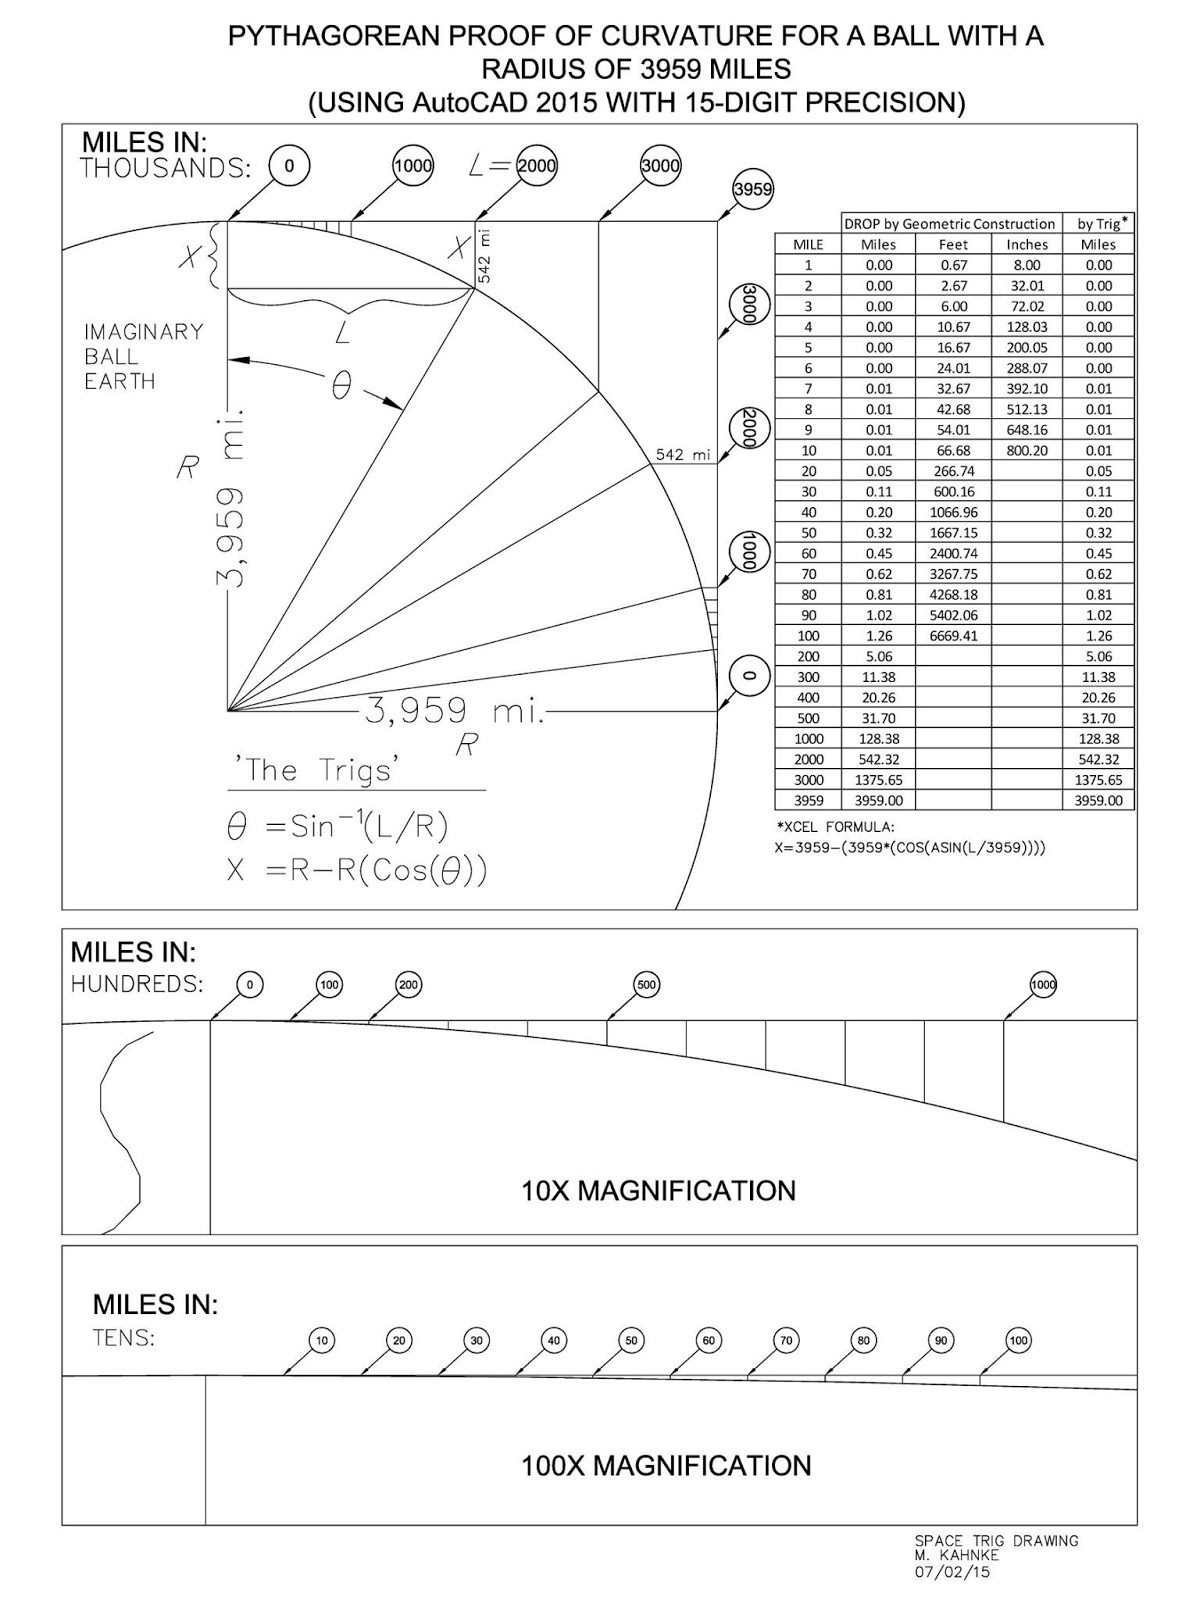 In The Above Diagram, We See That At 2000 Miles There Is A 542 Mile  Separation Or Drop Due To The Supposed Curvature Of The Earth If The  Planes Flying Were